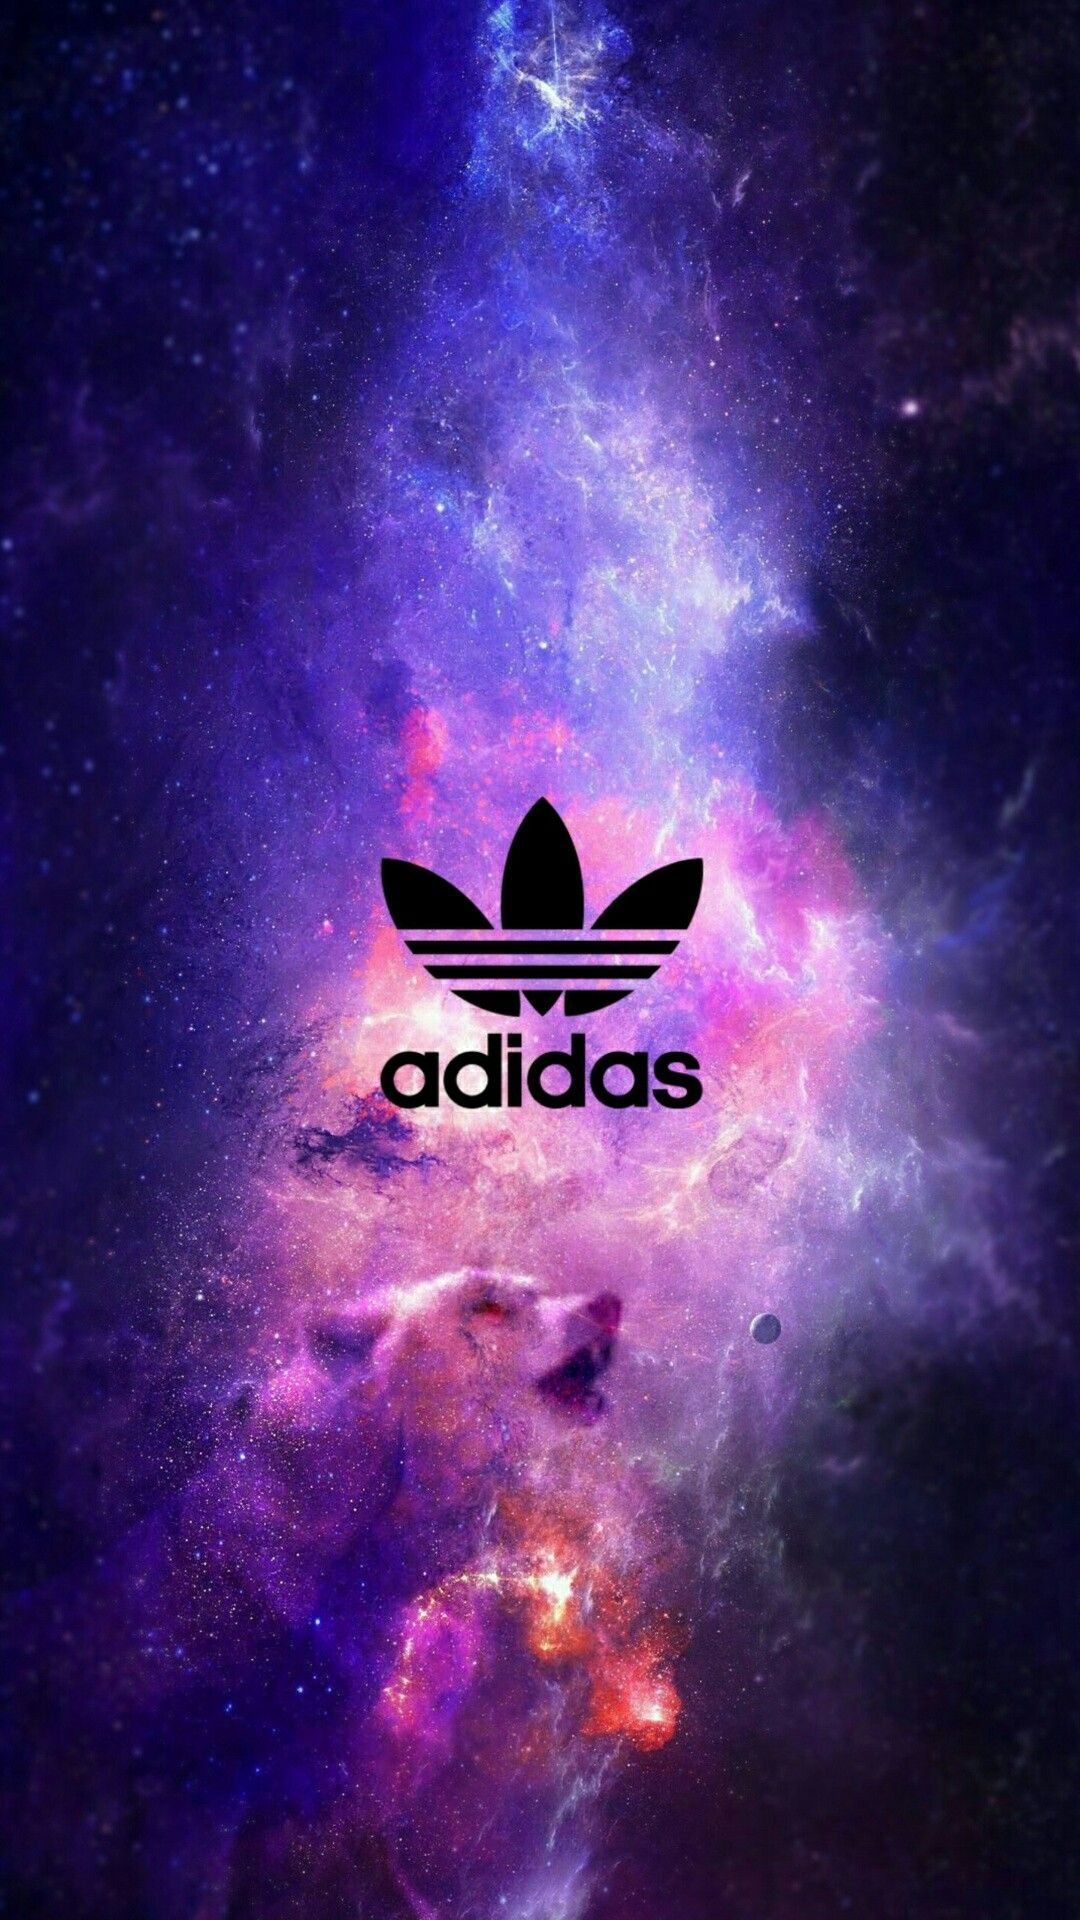 Adidas Wallpaper (49 Wallpapers) - HD Wallpapers in 2019 ...